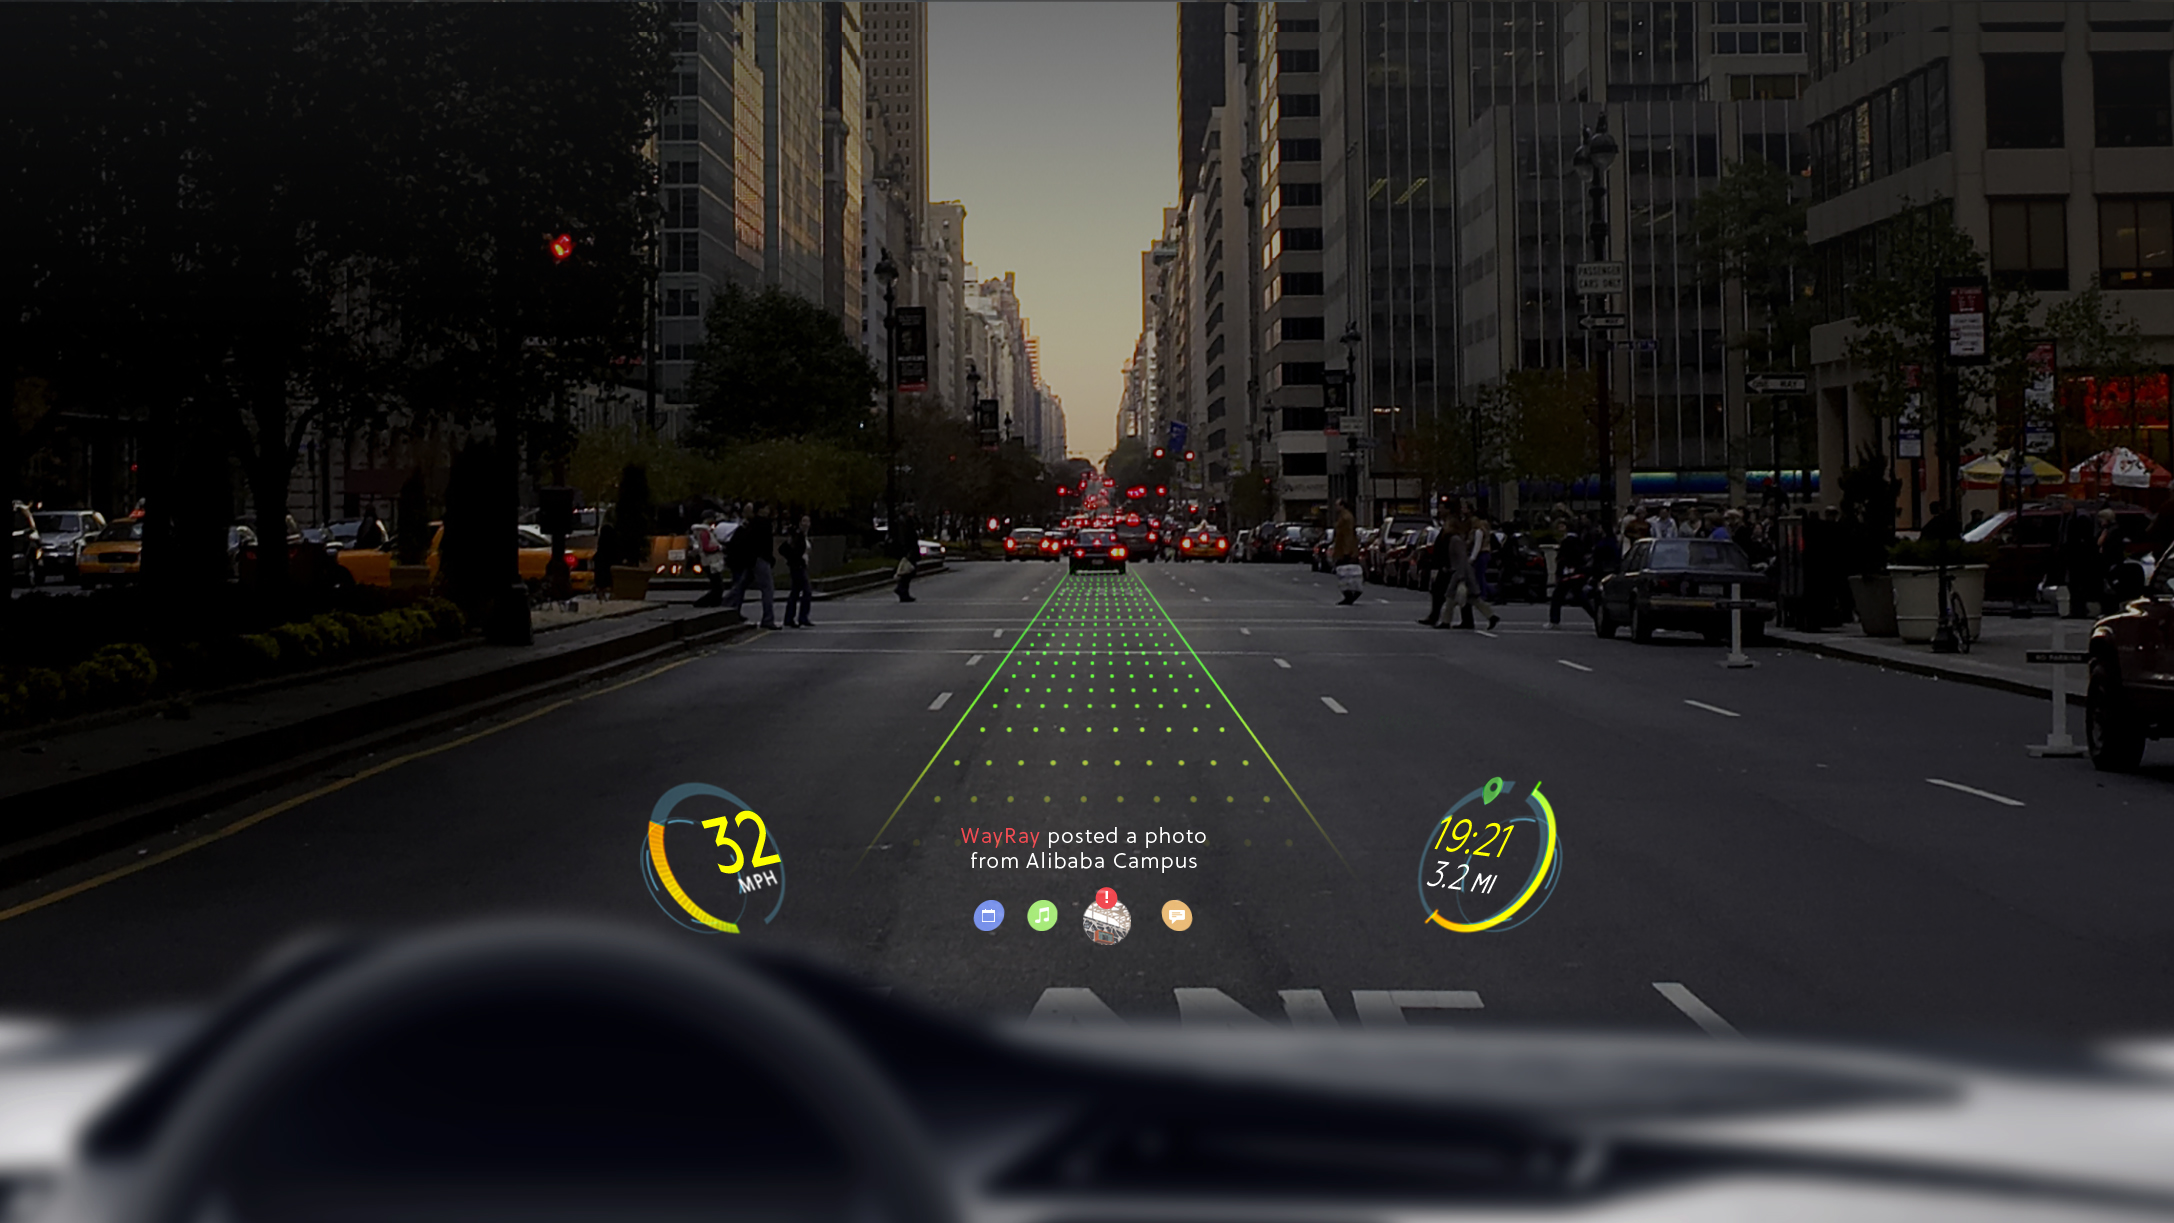 What Is AR Technology? Know How It Works And The Growth Of AR Tech